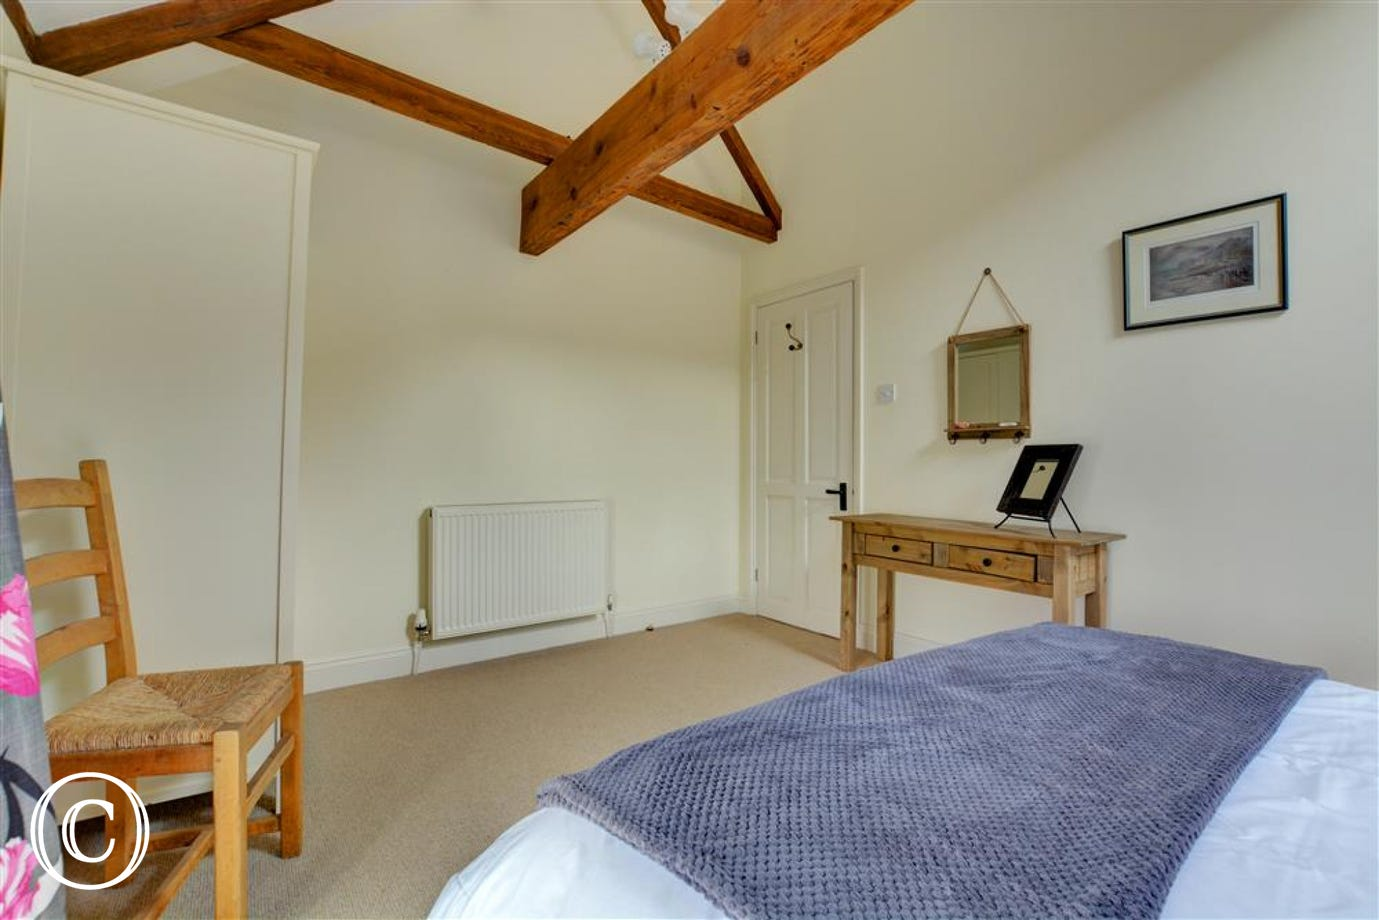 Open beams and furniture in bedroom two